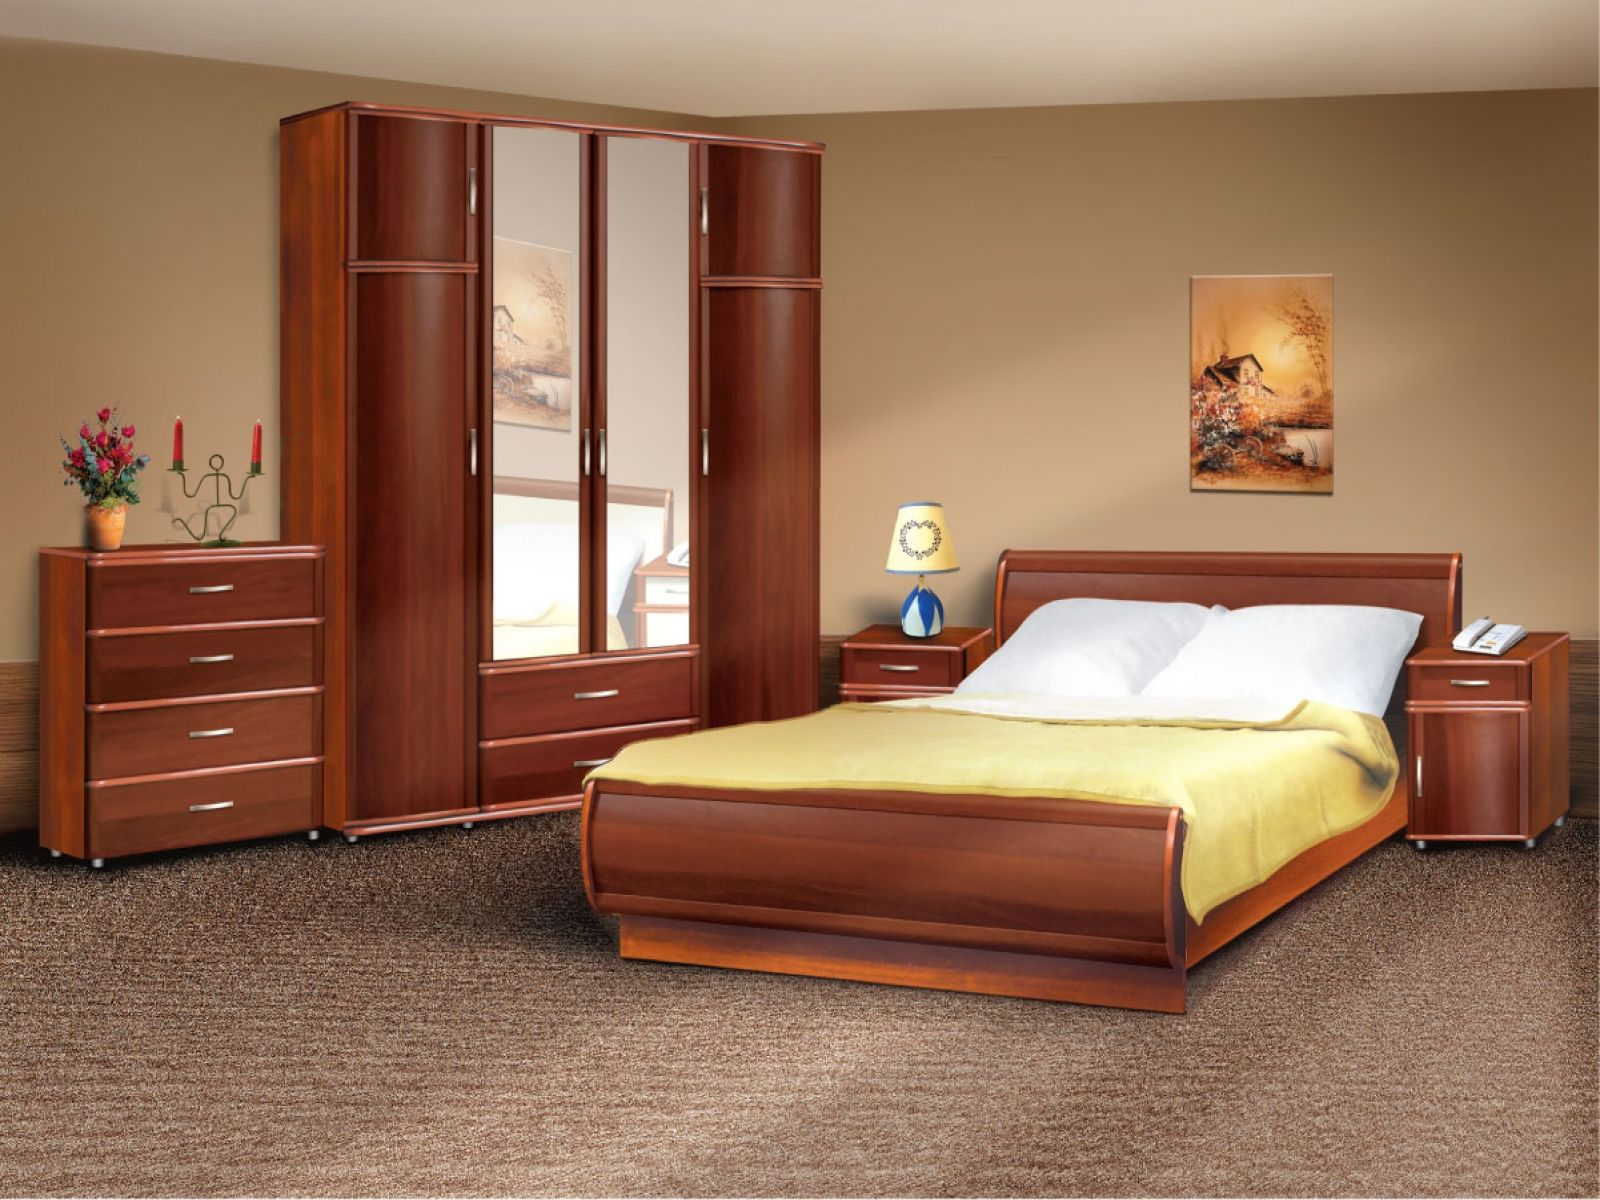 Modern bedroom dresser with mirror - In Vogue Arc Wooden Headboard King Size Bed And Double Mirror Door Cabinet Also Sweet Dresser Brown Bedroomssmall Bedroomsmodern